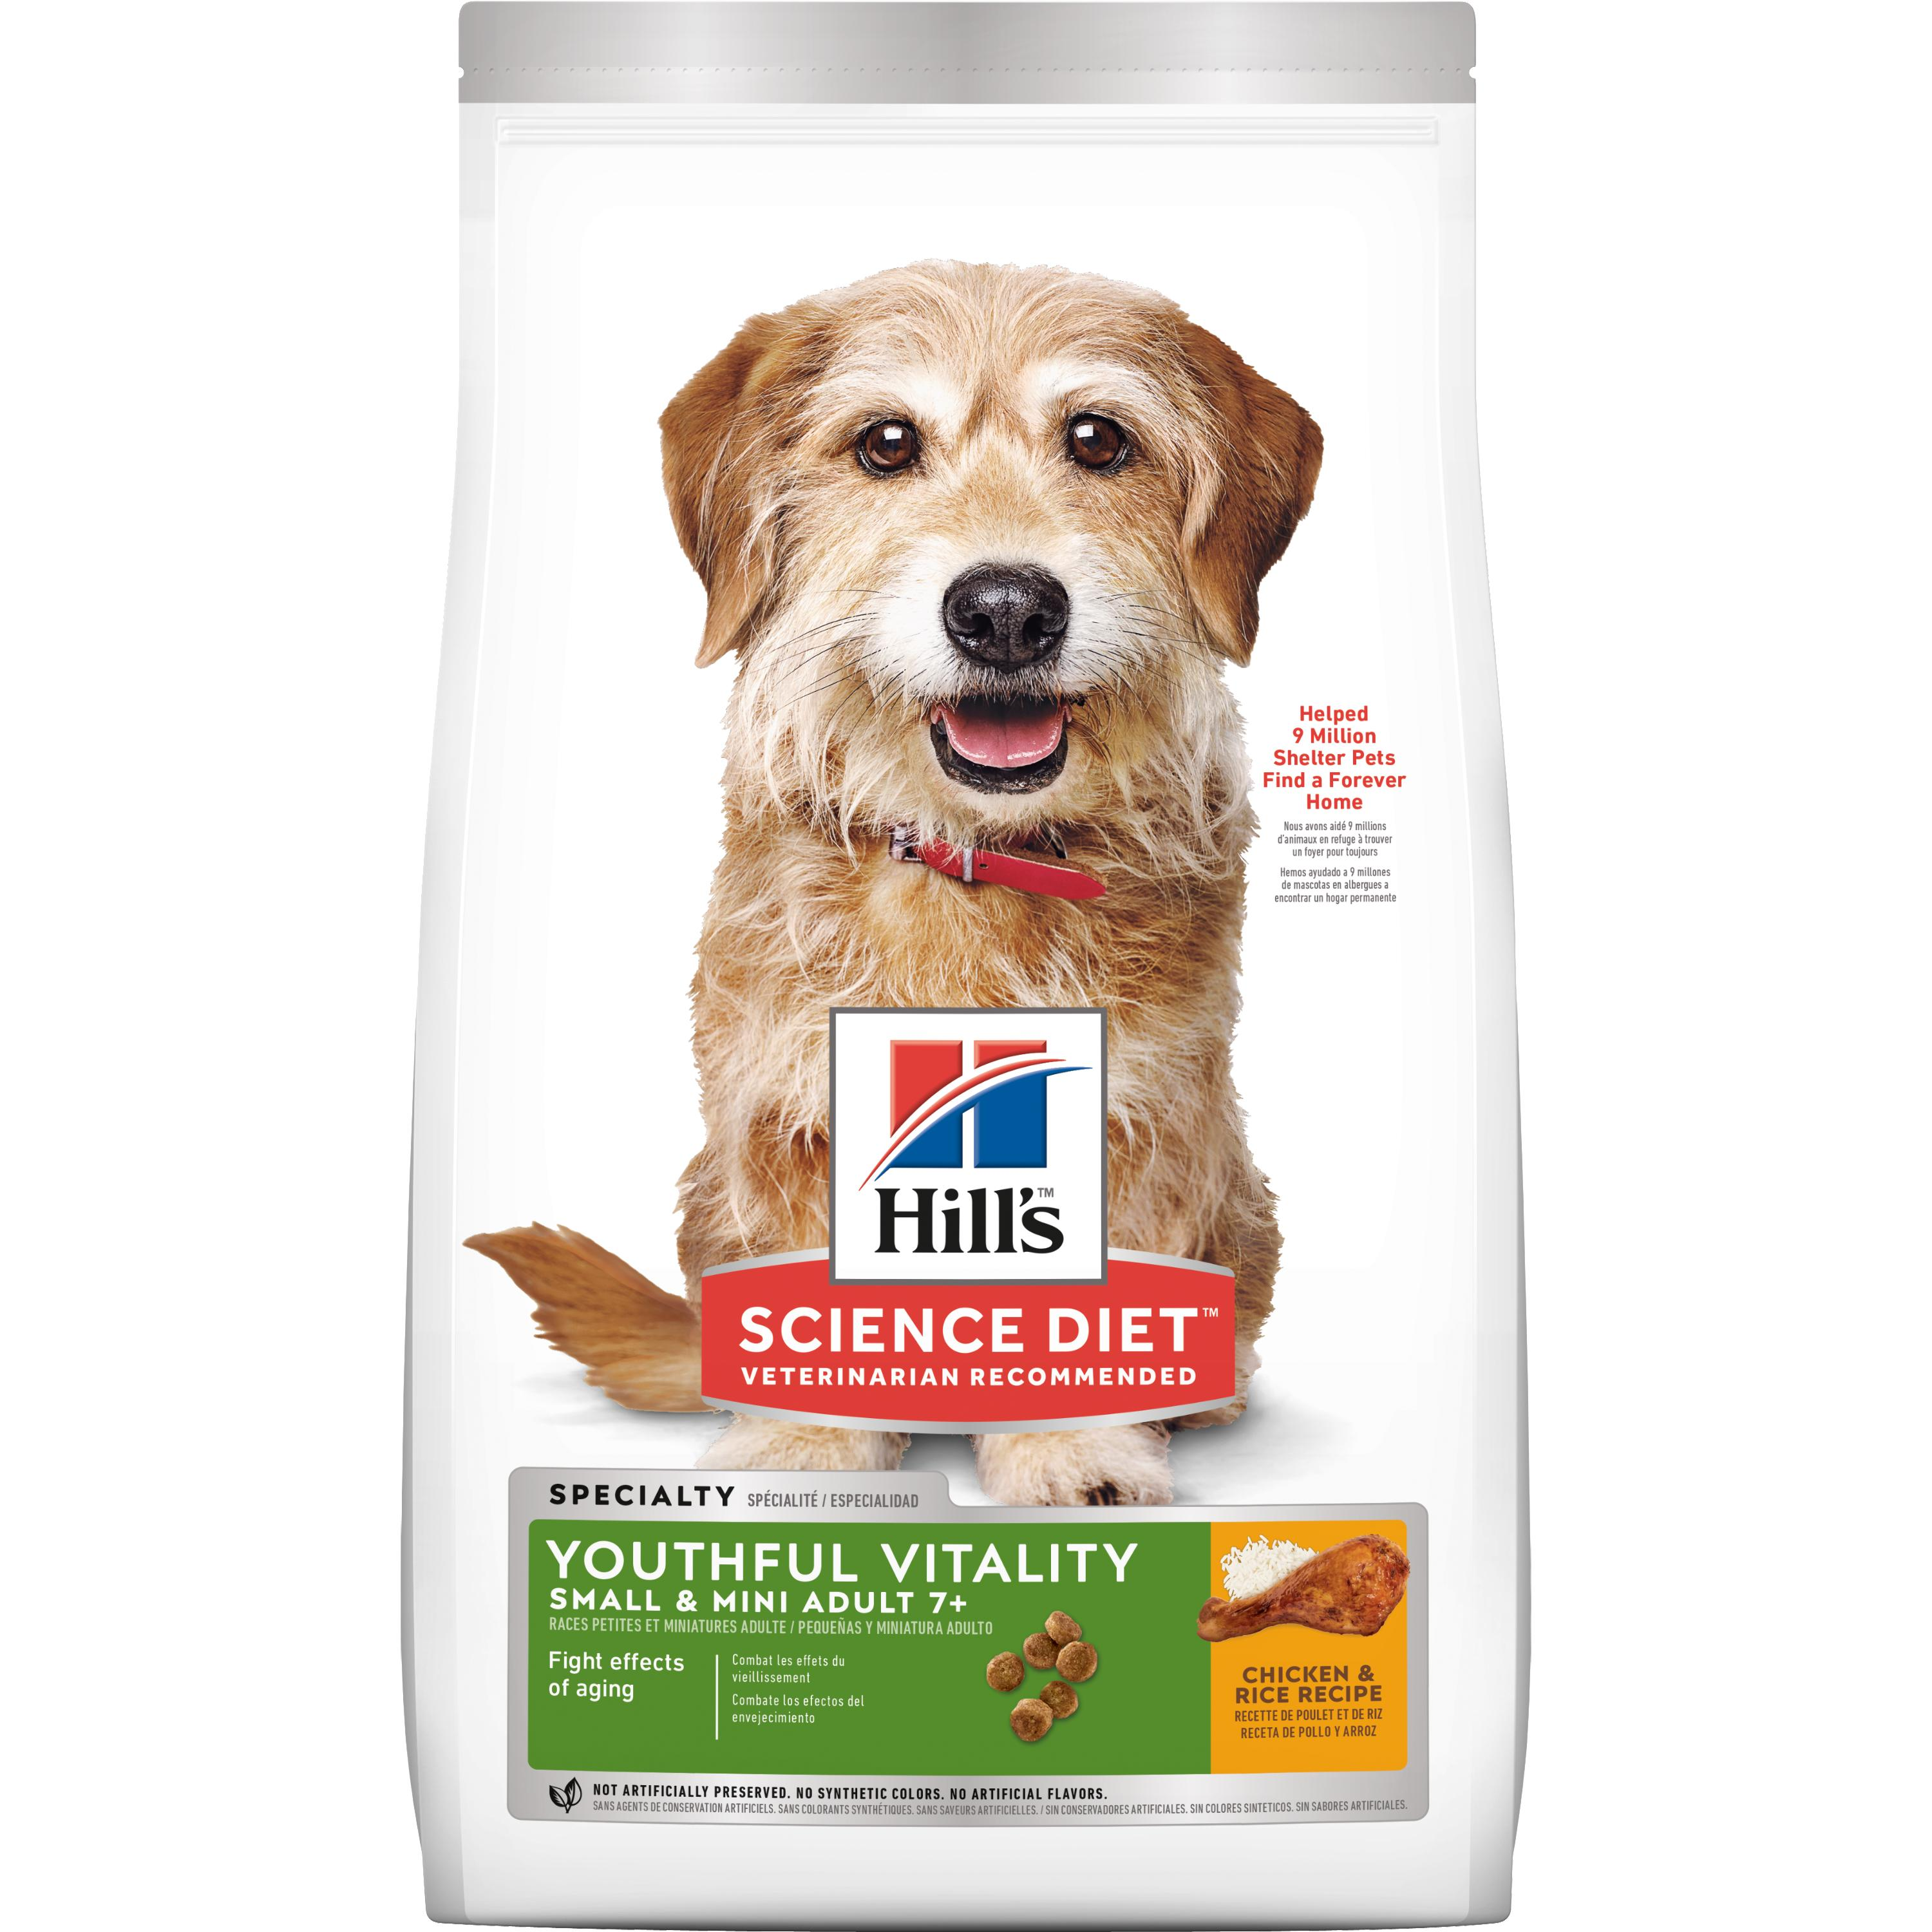 Hill's Science Diet (Spend $20,Get $5) Adult 7+ Youthful Vitality Small & Mini Chicken & Rice Recipe Dry Dog Food